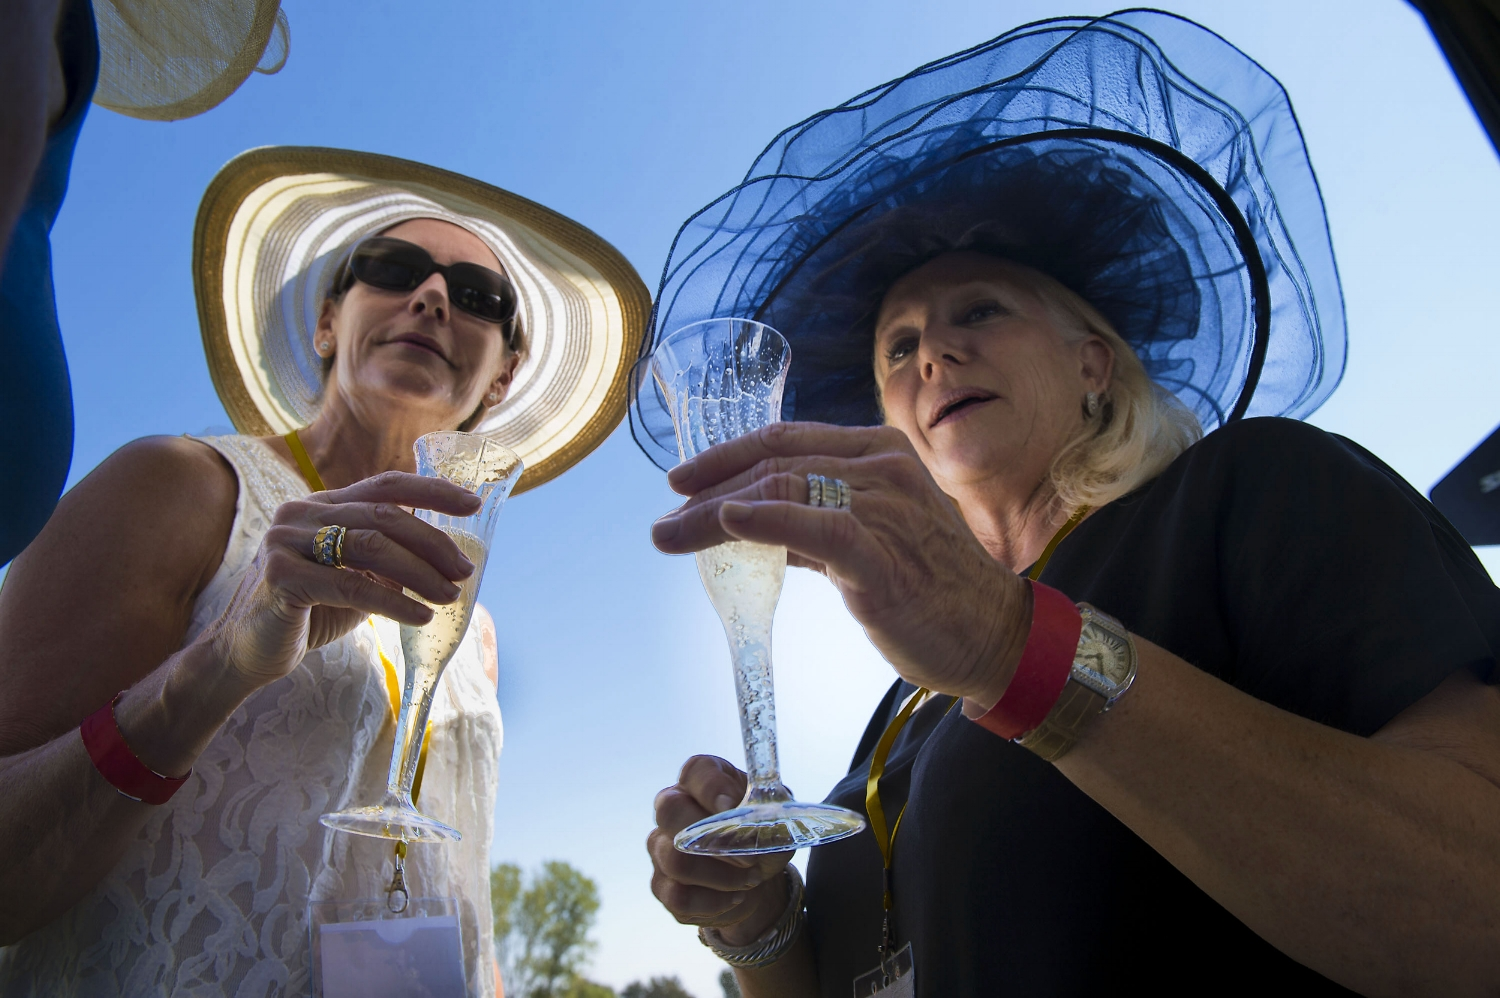 Linda Lasher, left, and Shari Lasher enjoy a glass of Champagne during a polo match at Chamberlain Ranch in Wilton on Saturday, September 14, 2013.